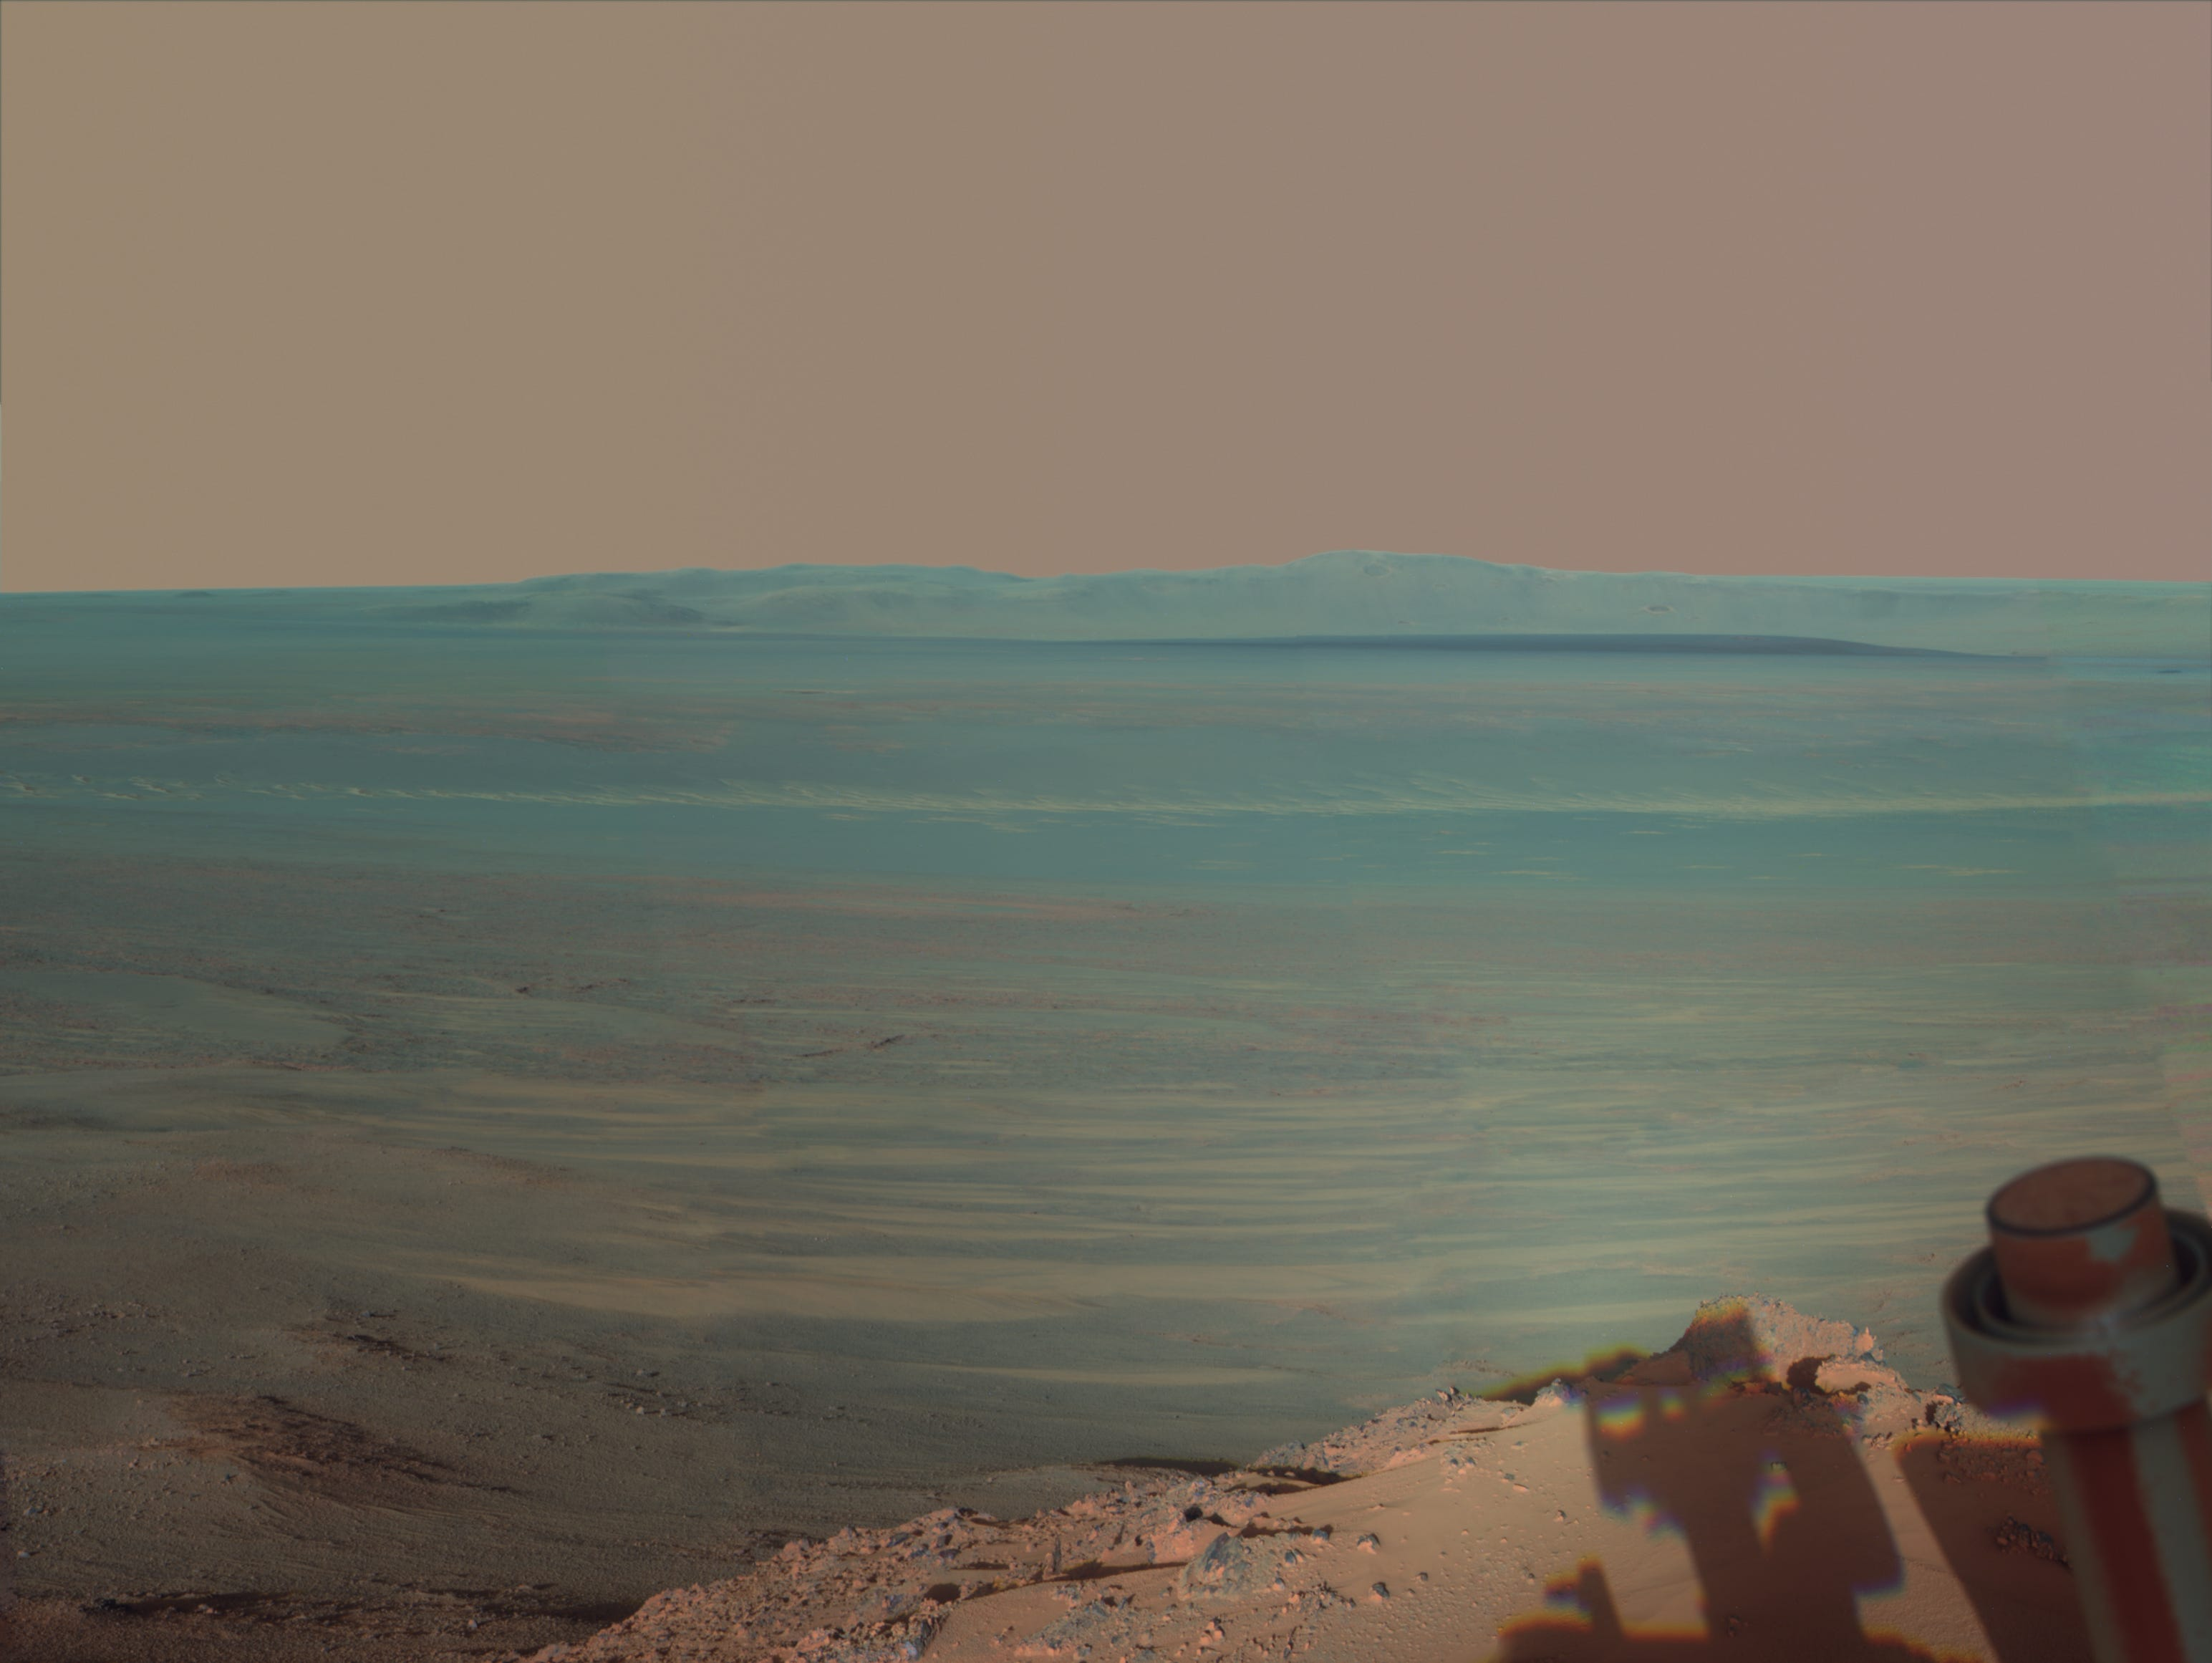 NASA's Mars Rover Opportunity catches its own late-afternoon shadow in this dramatically lit view eastward across Endeavour Crater on Mars. The rover used the panoramic camera (Pancam) to take the photo between 4:30 and 5 p.m. local Mars time on May 22, 2012.